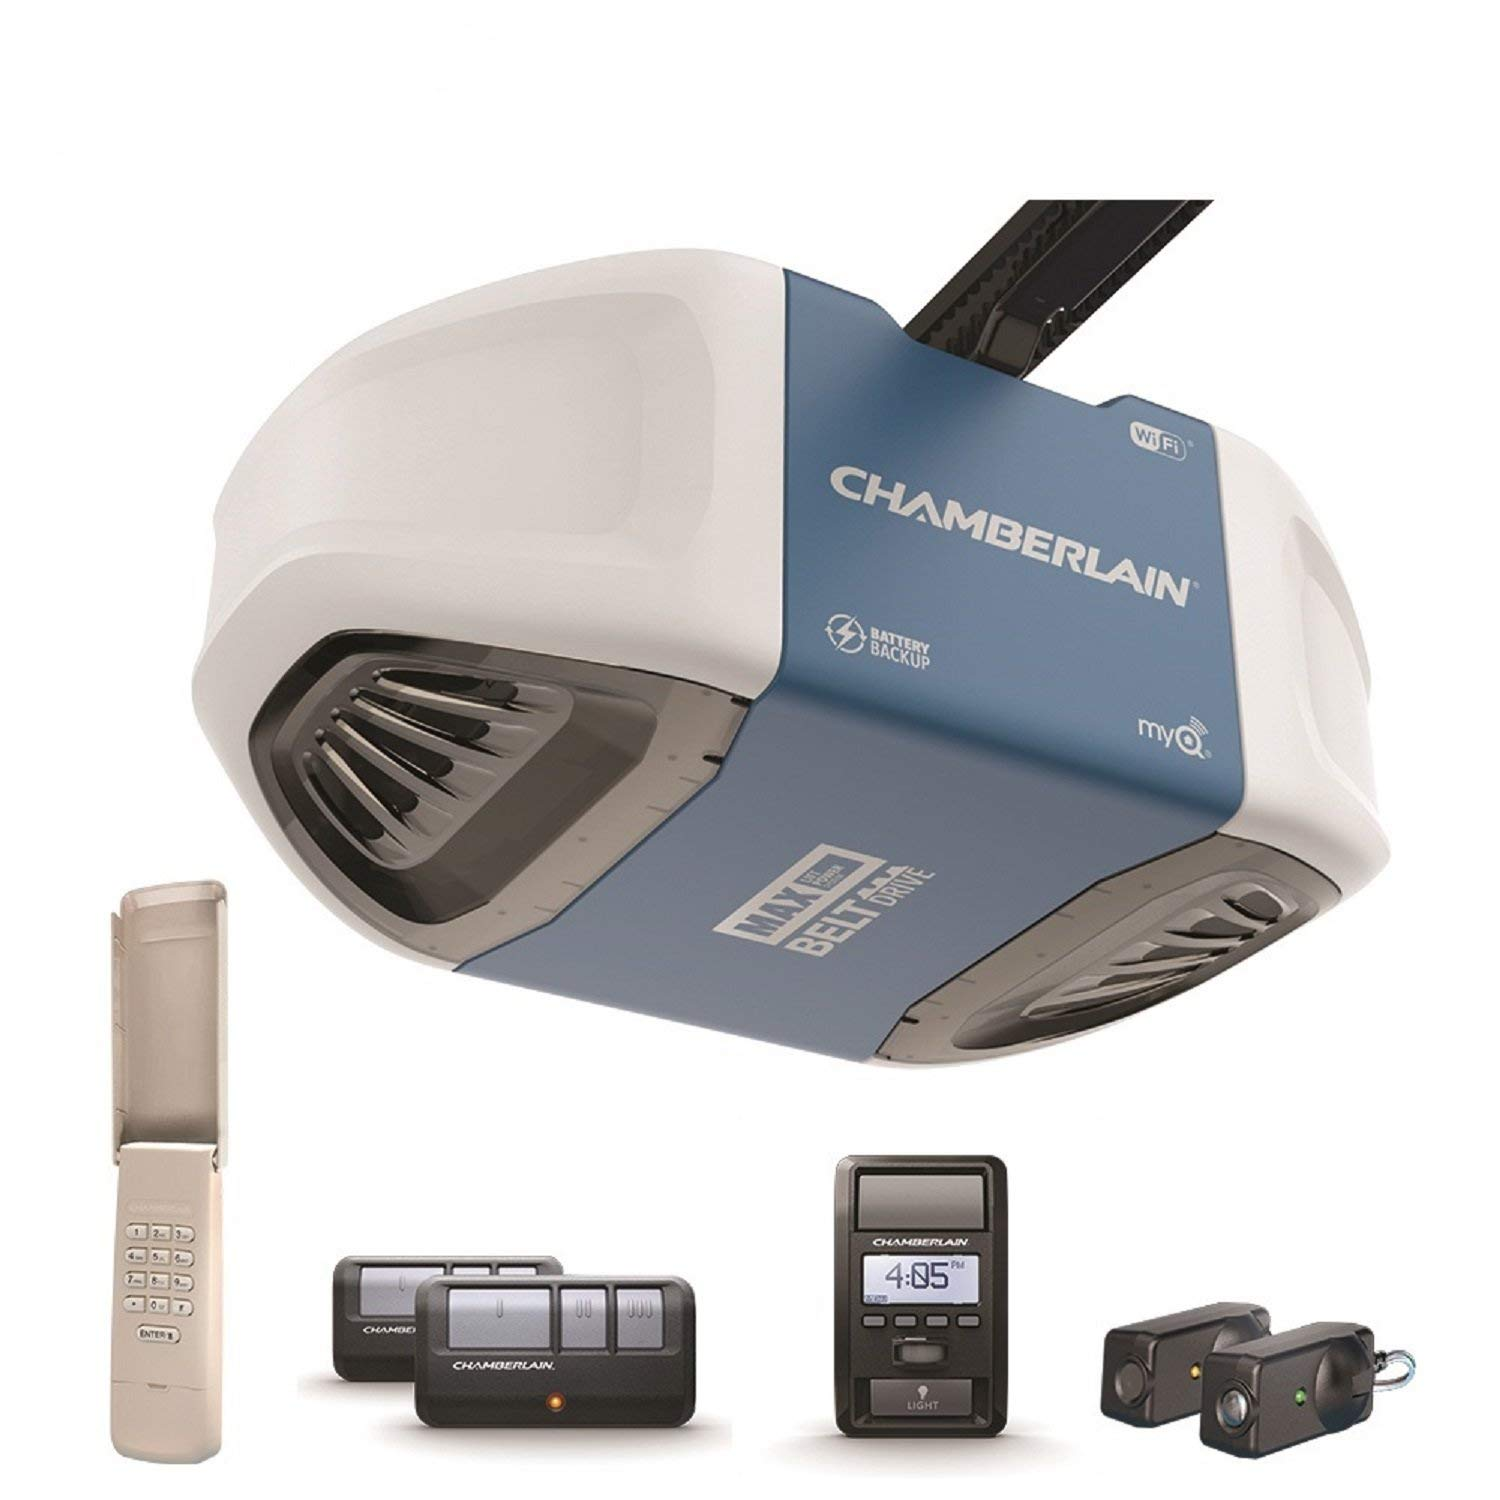 Chamberlain Group Chamberlain B970 Smartphone-Controlled Ultra-Quiet & Strong Belt Drive Garage Door Opener with Battery Backup and MAX Lifting Power, Blue (Renewed)